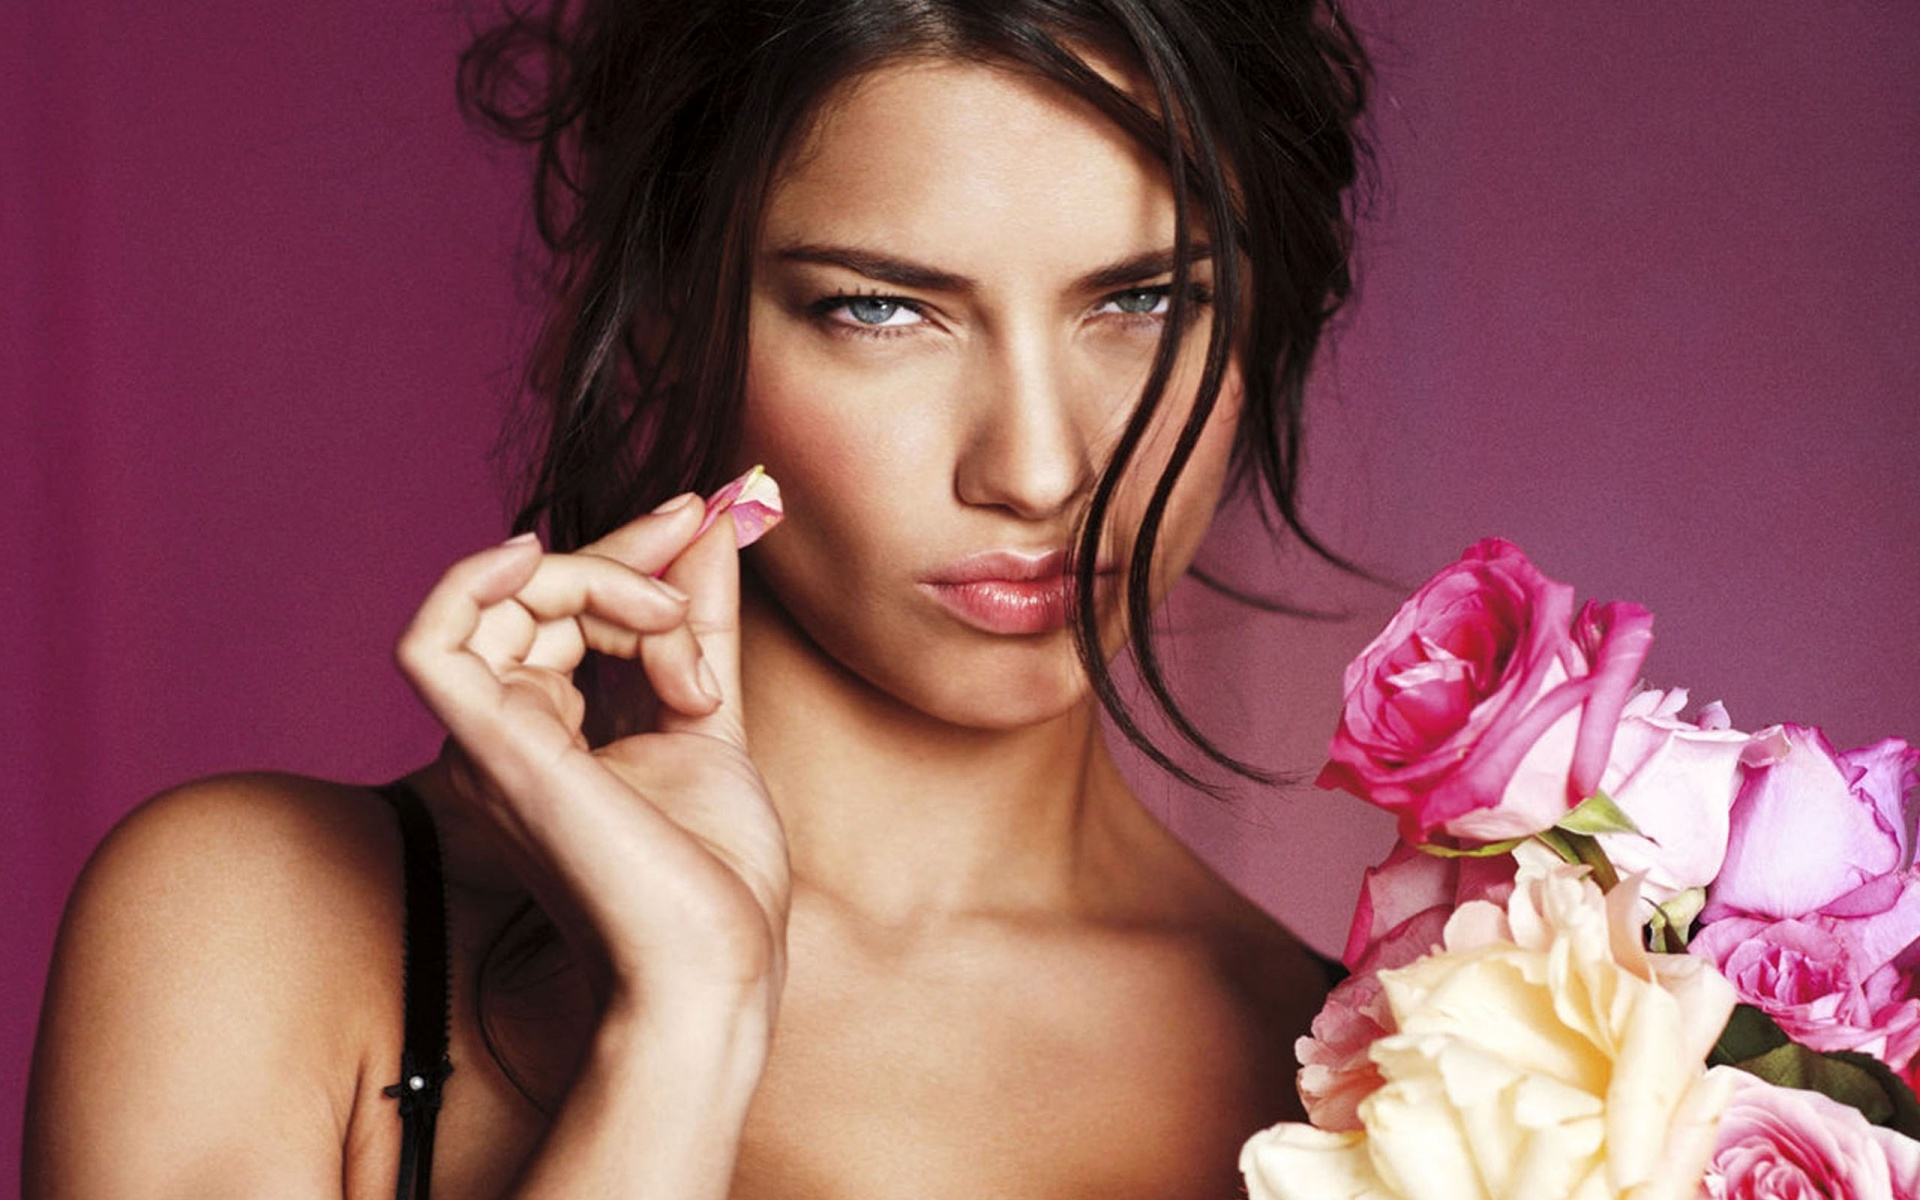 adriana lima beautiful image - photo #18